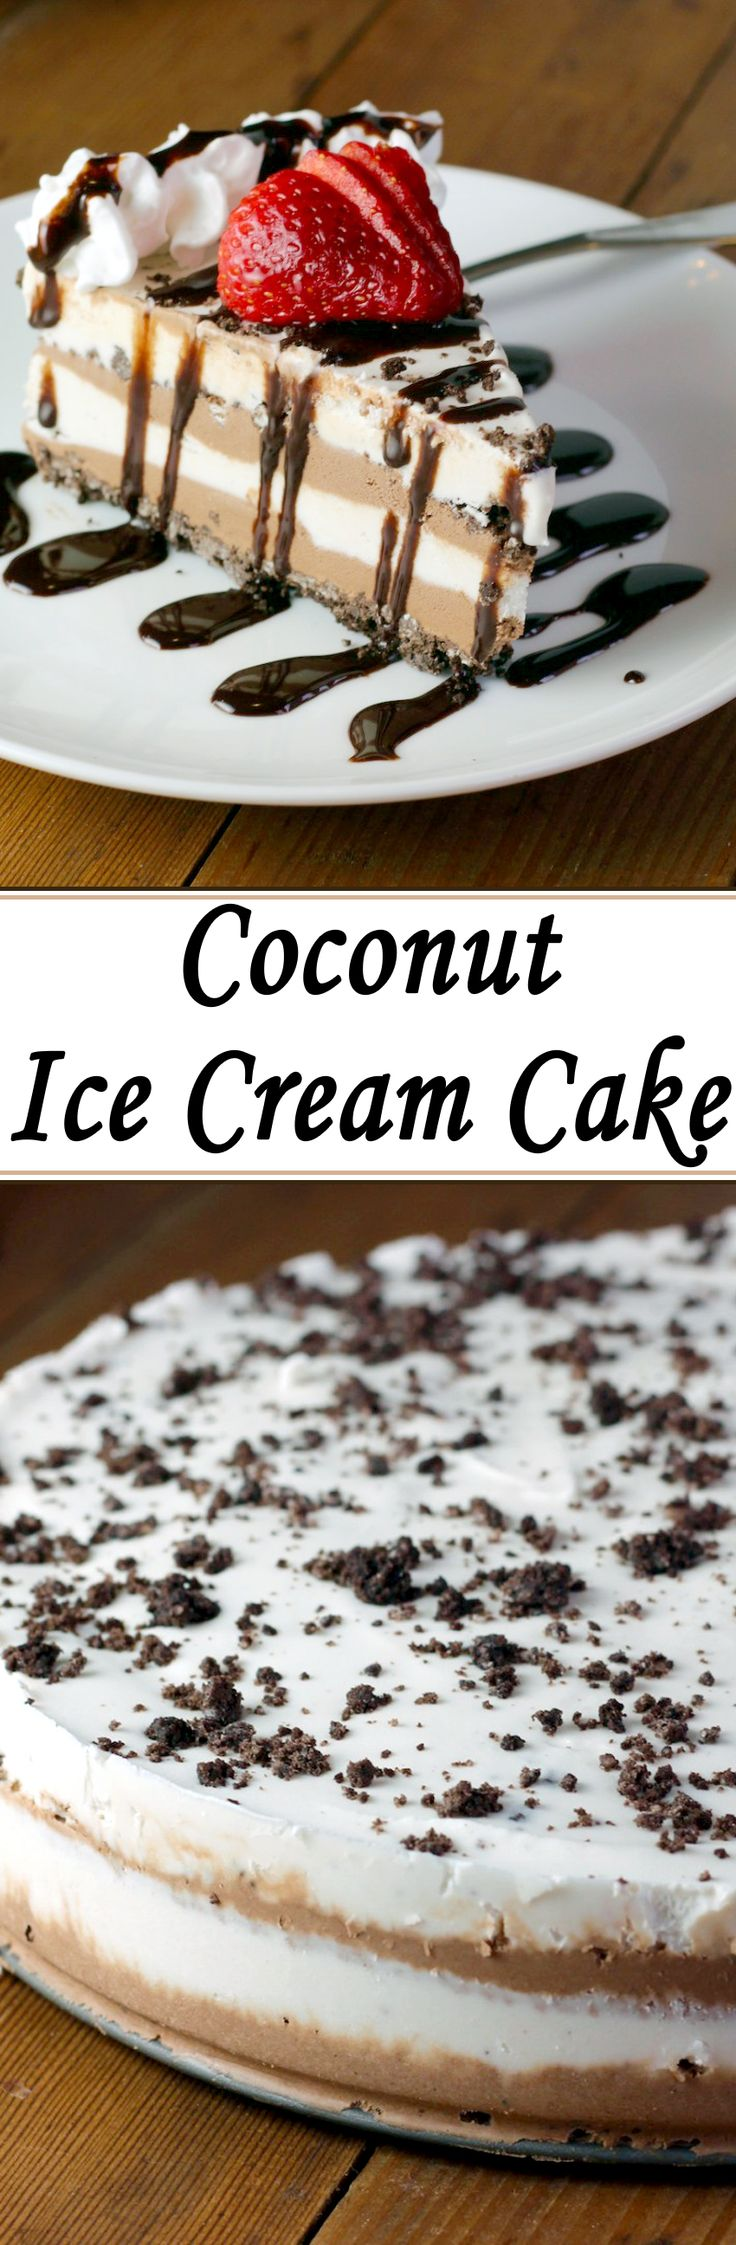 Not only is this ice cream cake super easy to make, but it looks really impressive, and everyone absolutely loves it!